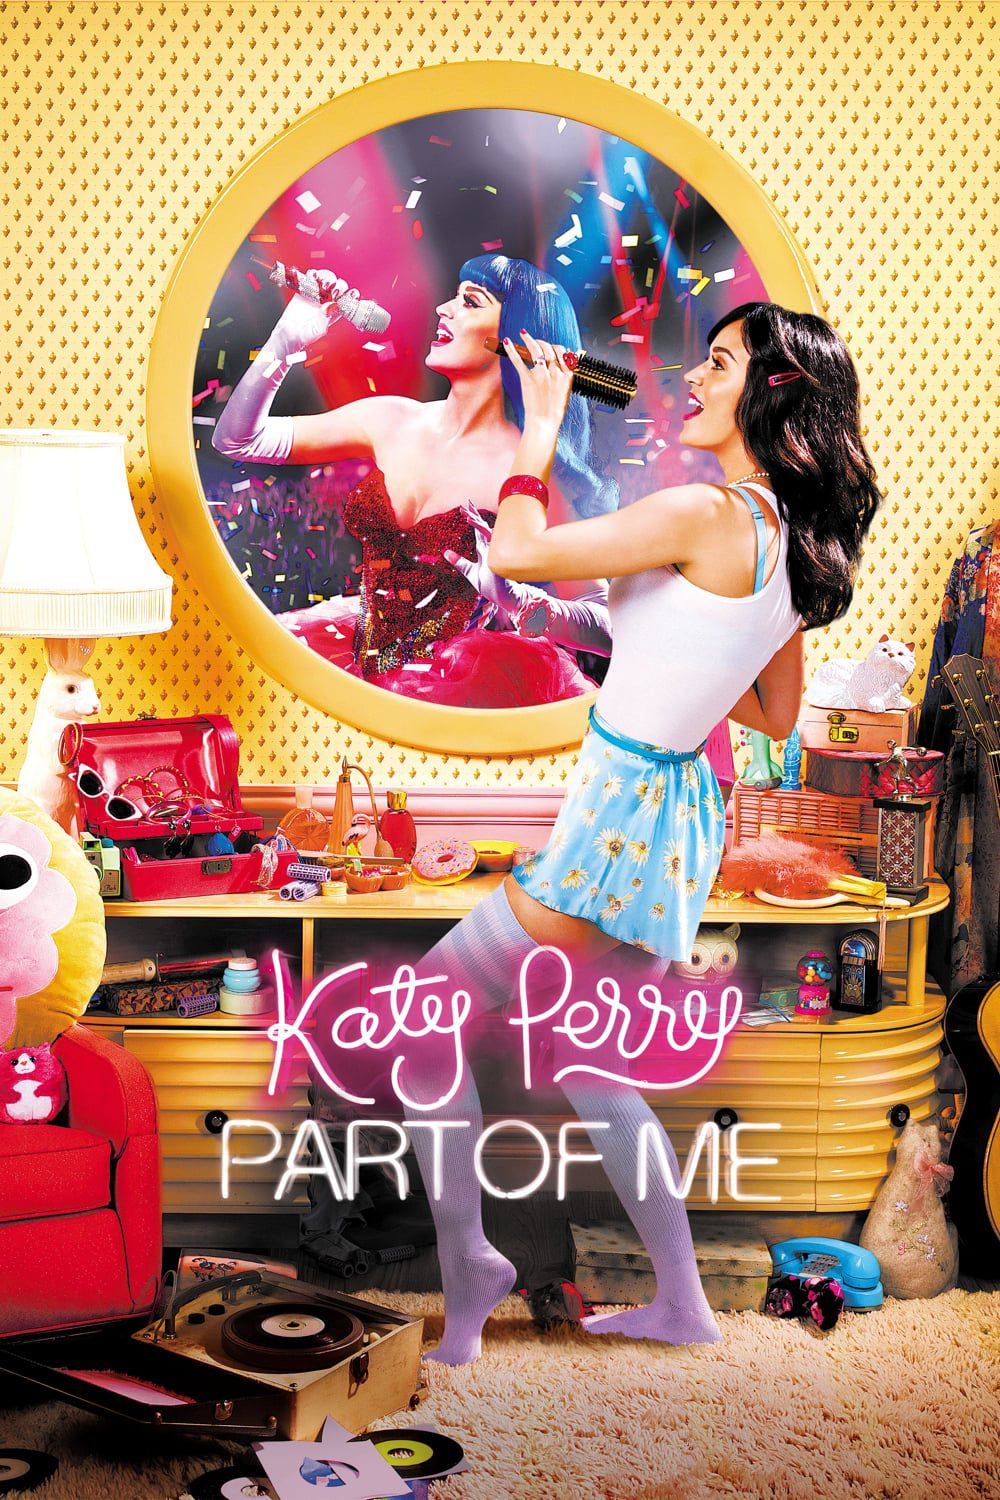 Katy Perry : Part of Me - Documentaire (2012)